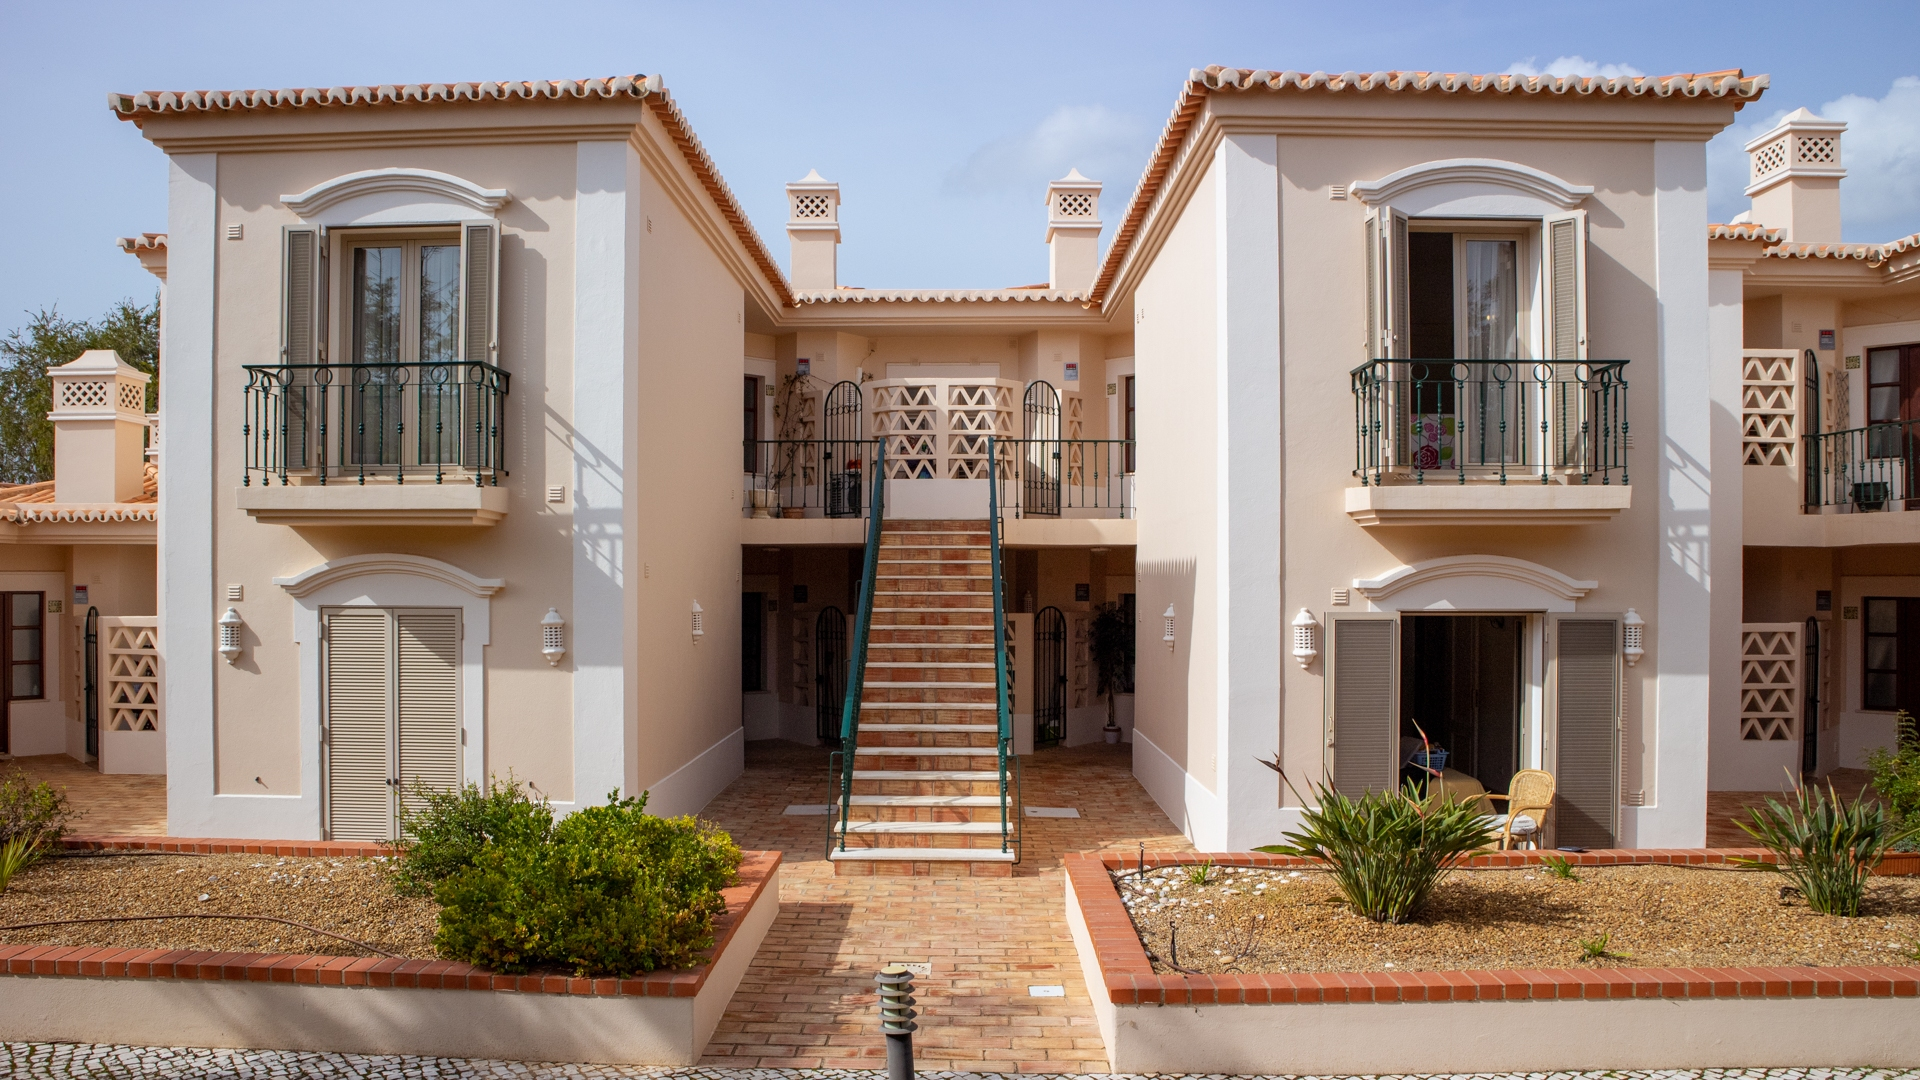 2 bedroom apartment with communal pool located on golf resort, near Carvoeiro | PCG1368 Two bedrooms two bathrooms apartment with spacious balcony with nice views, golf privileges and green areas. Located in Gramacho golf, near Carvoeiro.